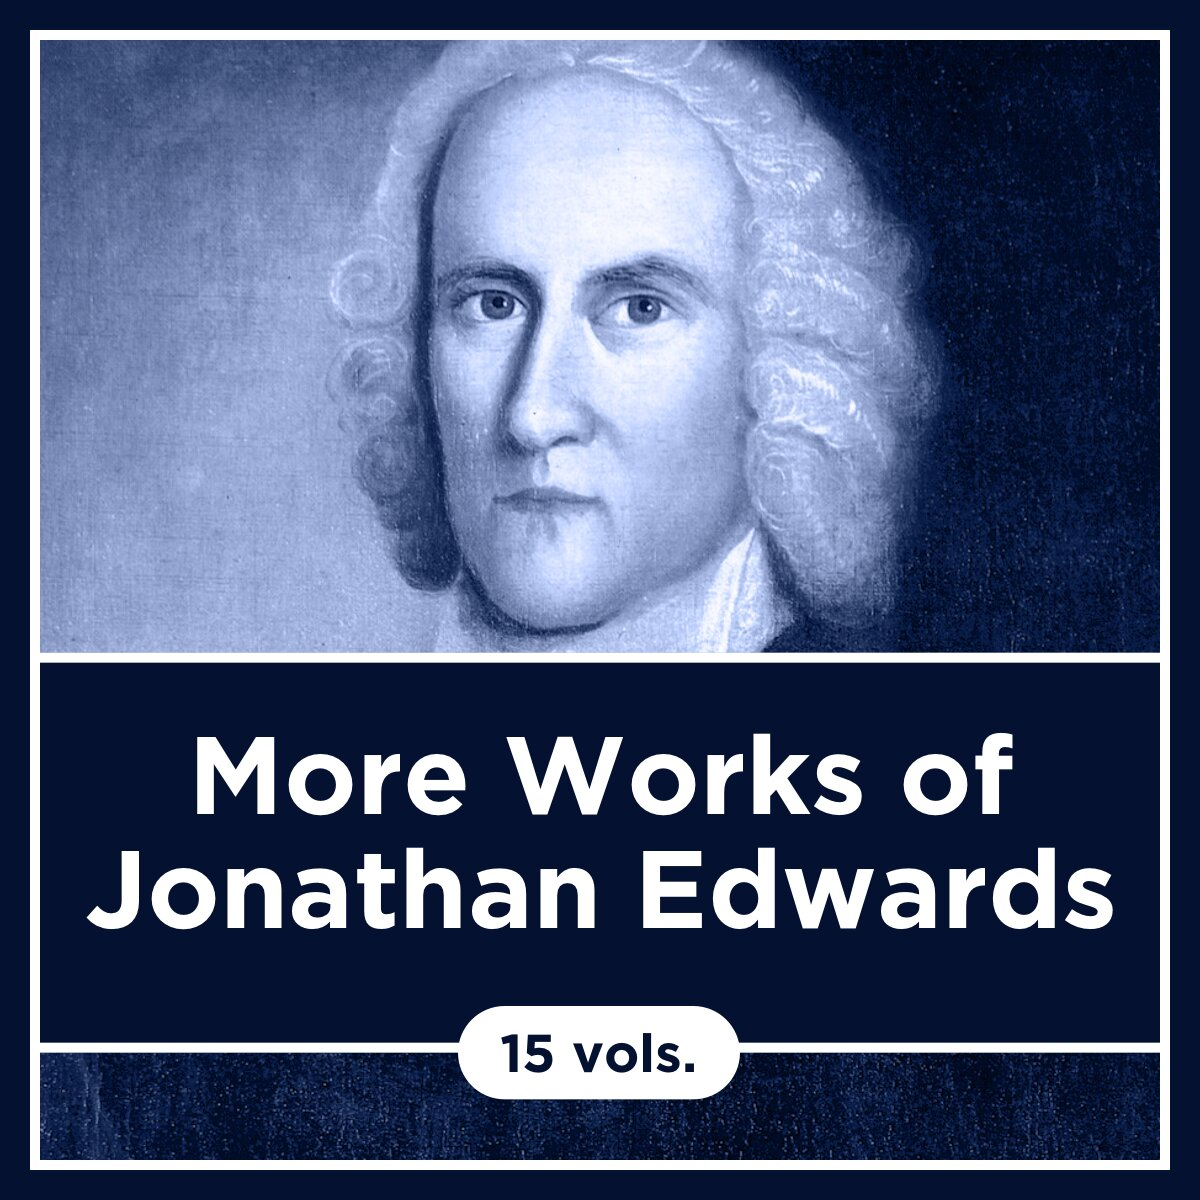 More Works of Jonathan Edwards, Yale Edition (15 vols.)